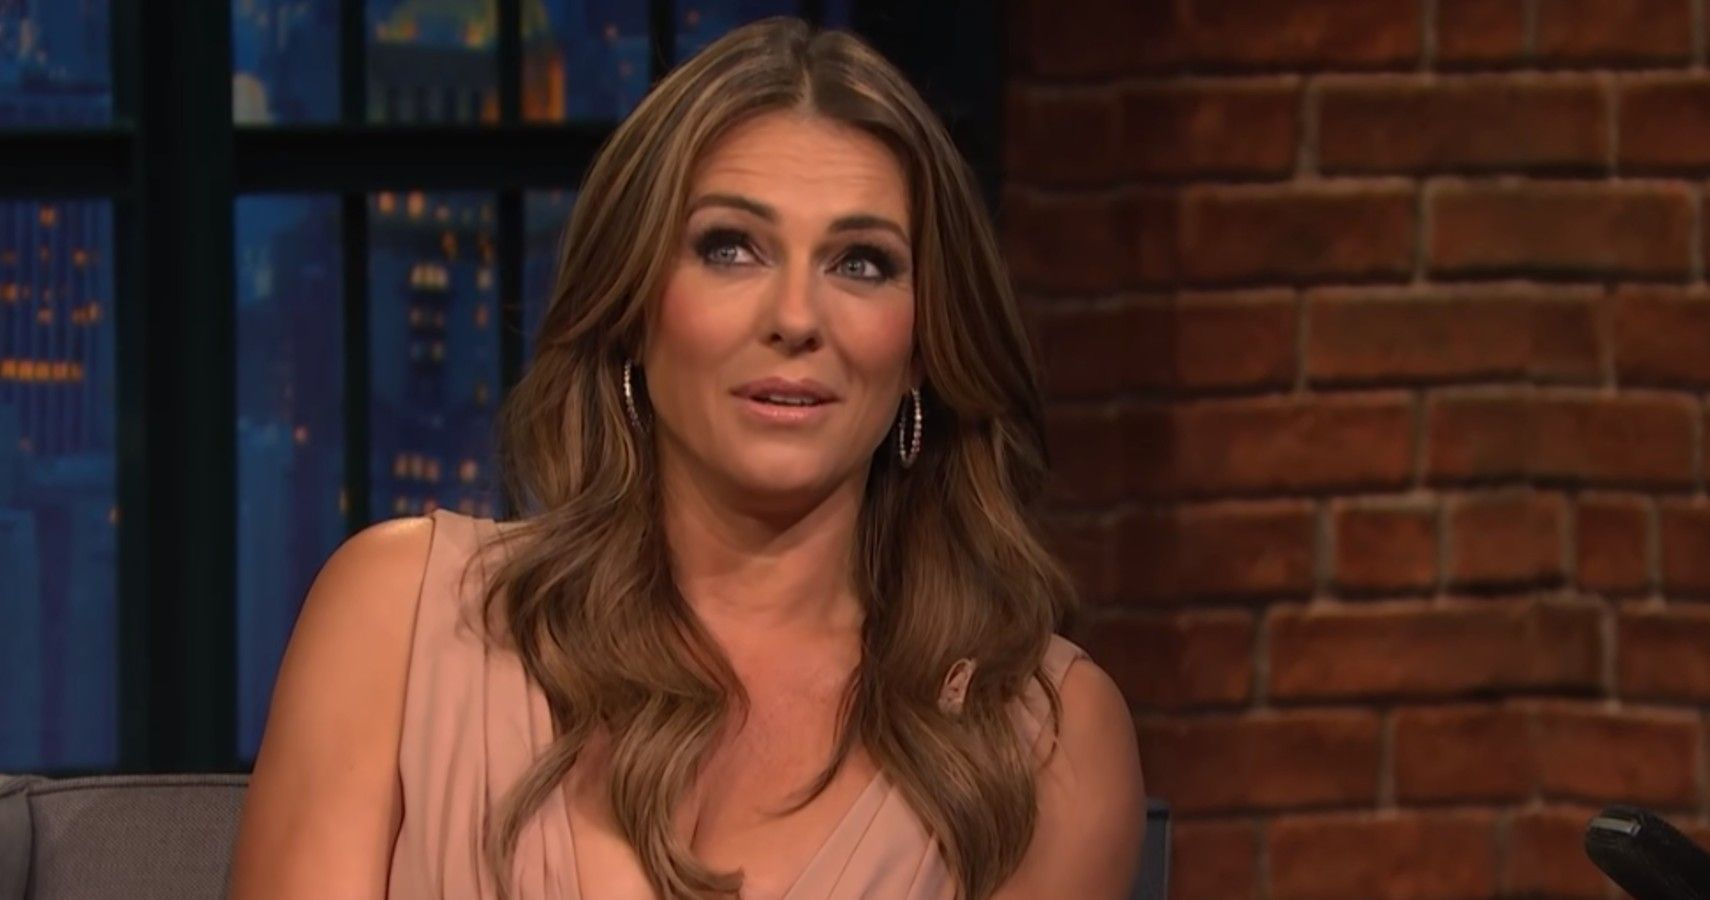 Being A Working Mom Is Hard Says Elizabeth Hurley | Moms.com